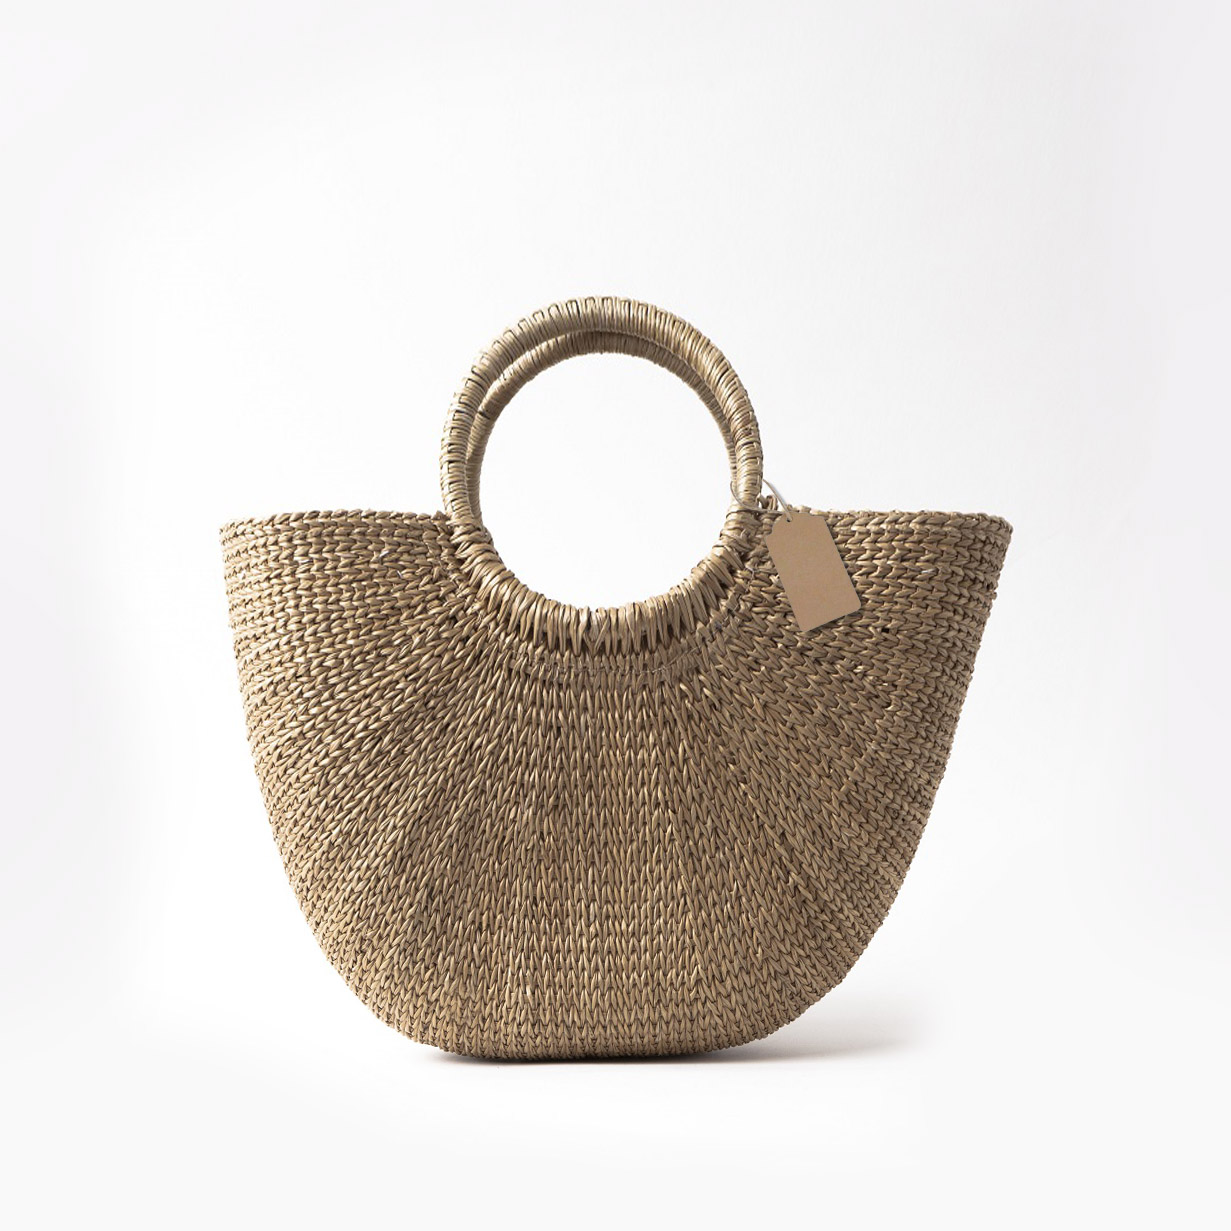 Handmade Rattan Bag From Thailand